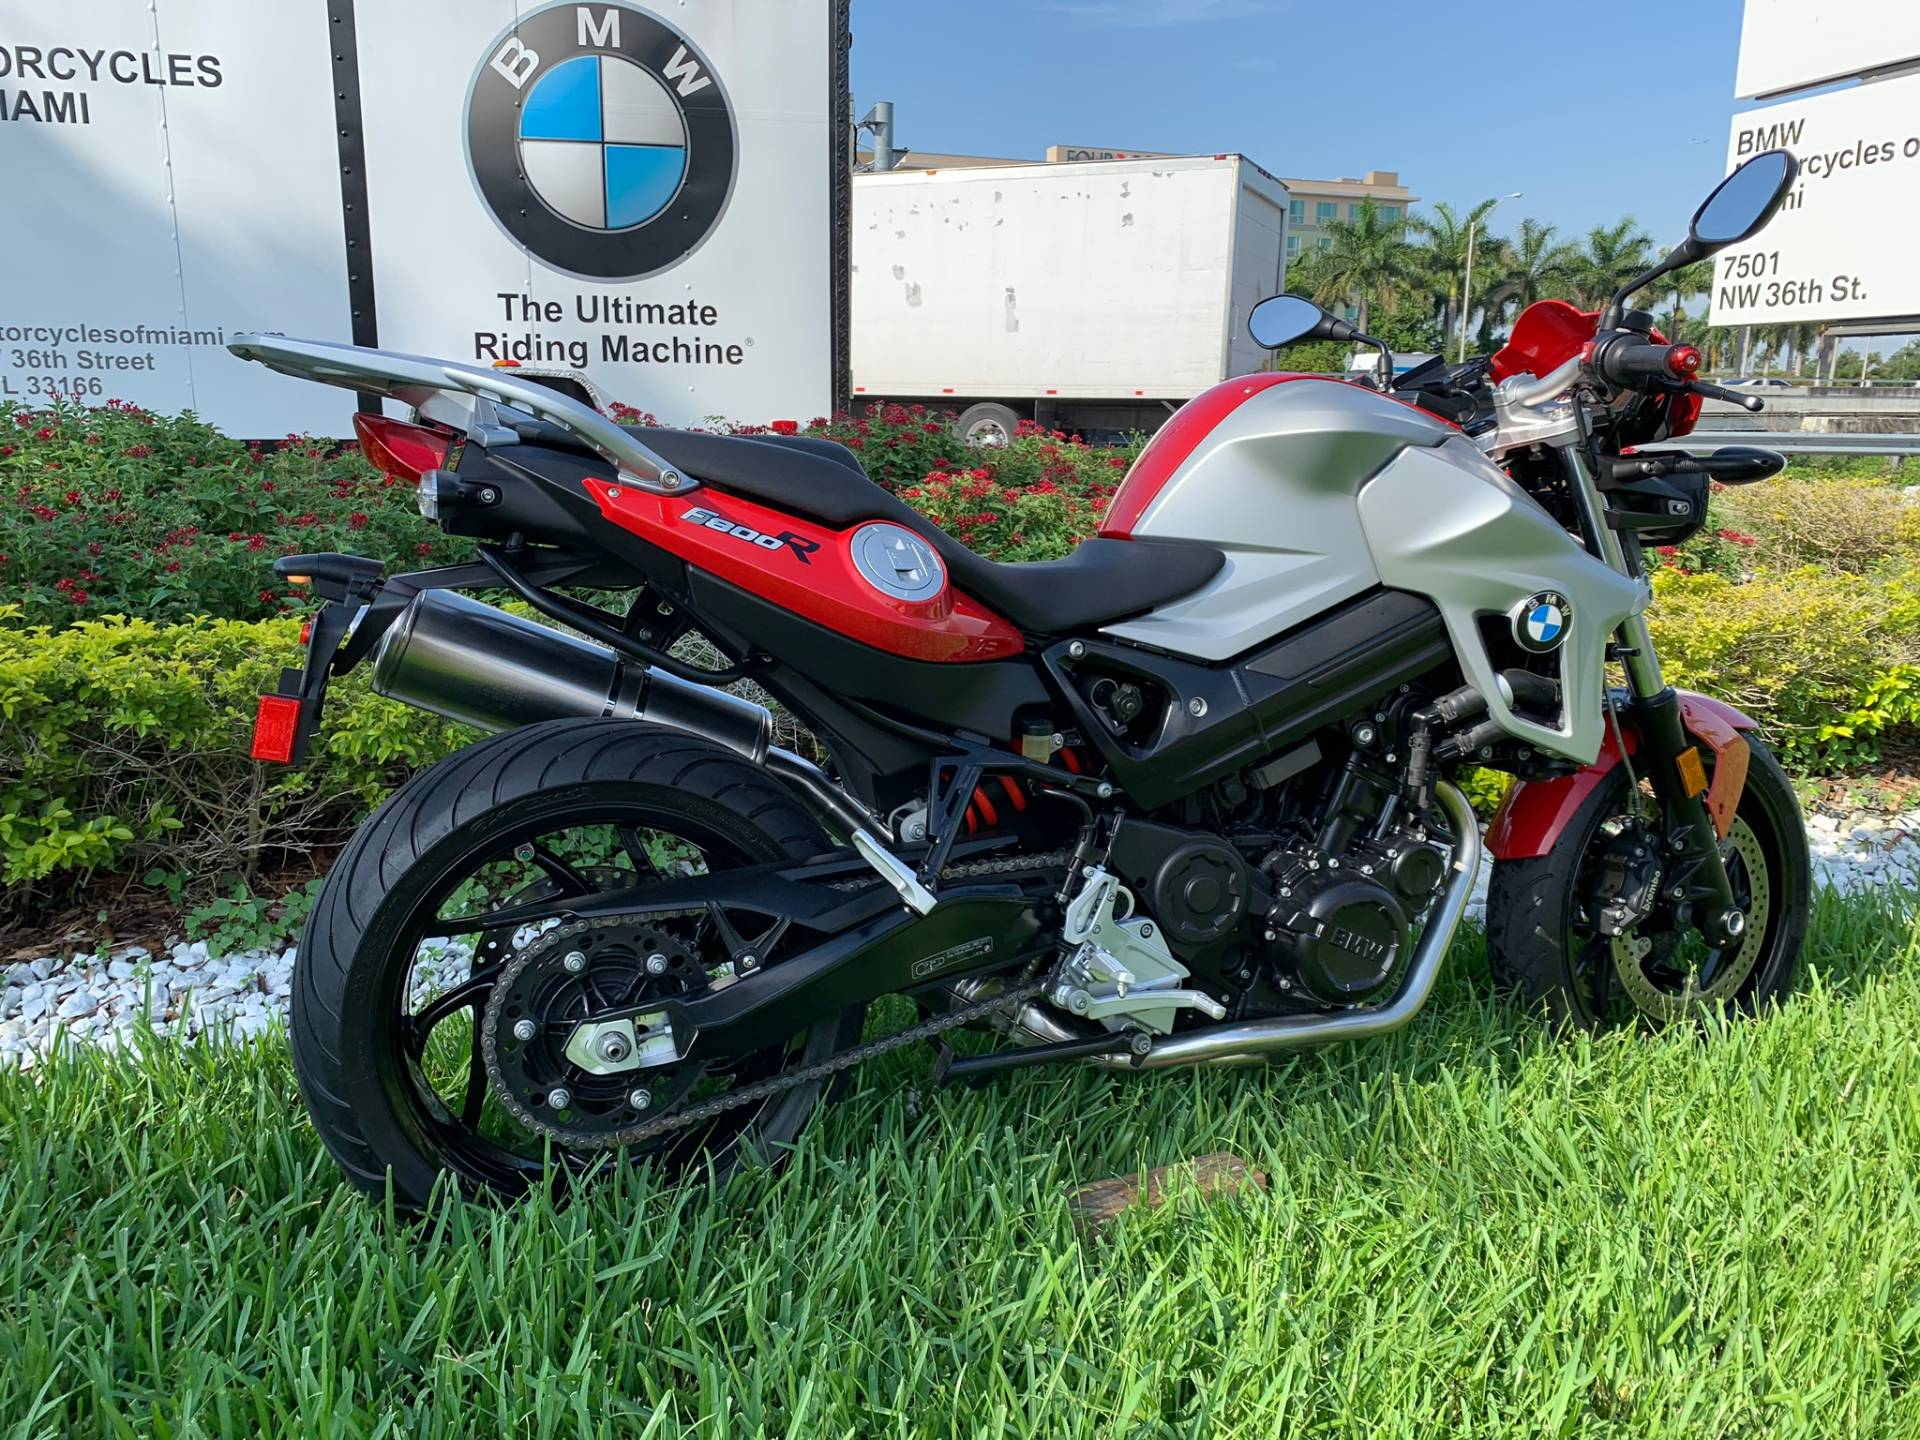 Used 2012 BMW F 800 R for sale, BMW F 800R for sale, BMW Motorcycle F800R, used BMW Roaster, Naked, 800, BMW. BMW Motorcycles of Miami, Motorcycles of Miami, Motorcycles Miami, New Motorcycles, Used Motorcycles, pre-owned. #BMWMotorcyclesOfMiami #MotorcyclesOfMiami. - Photo 23